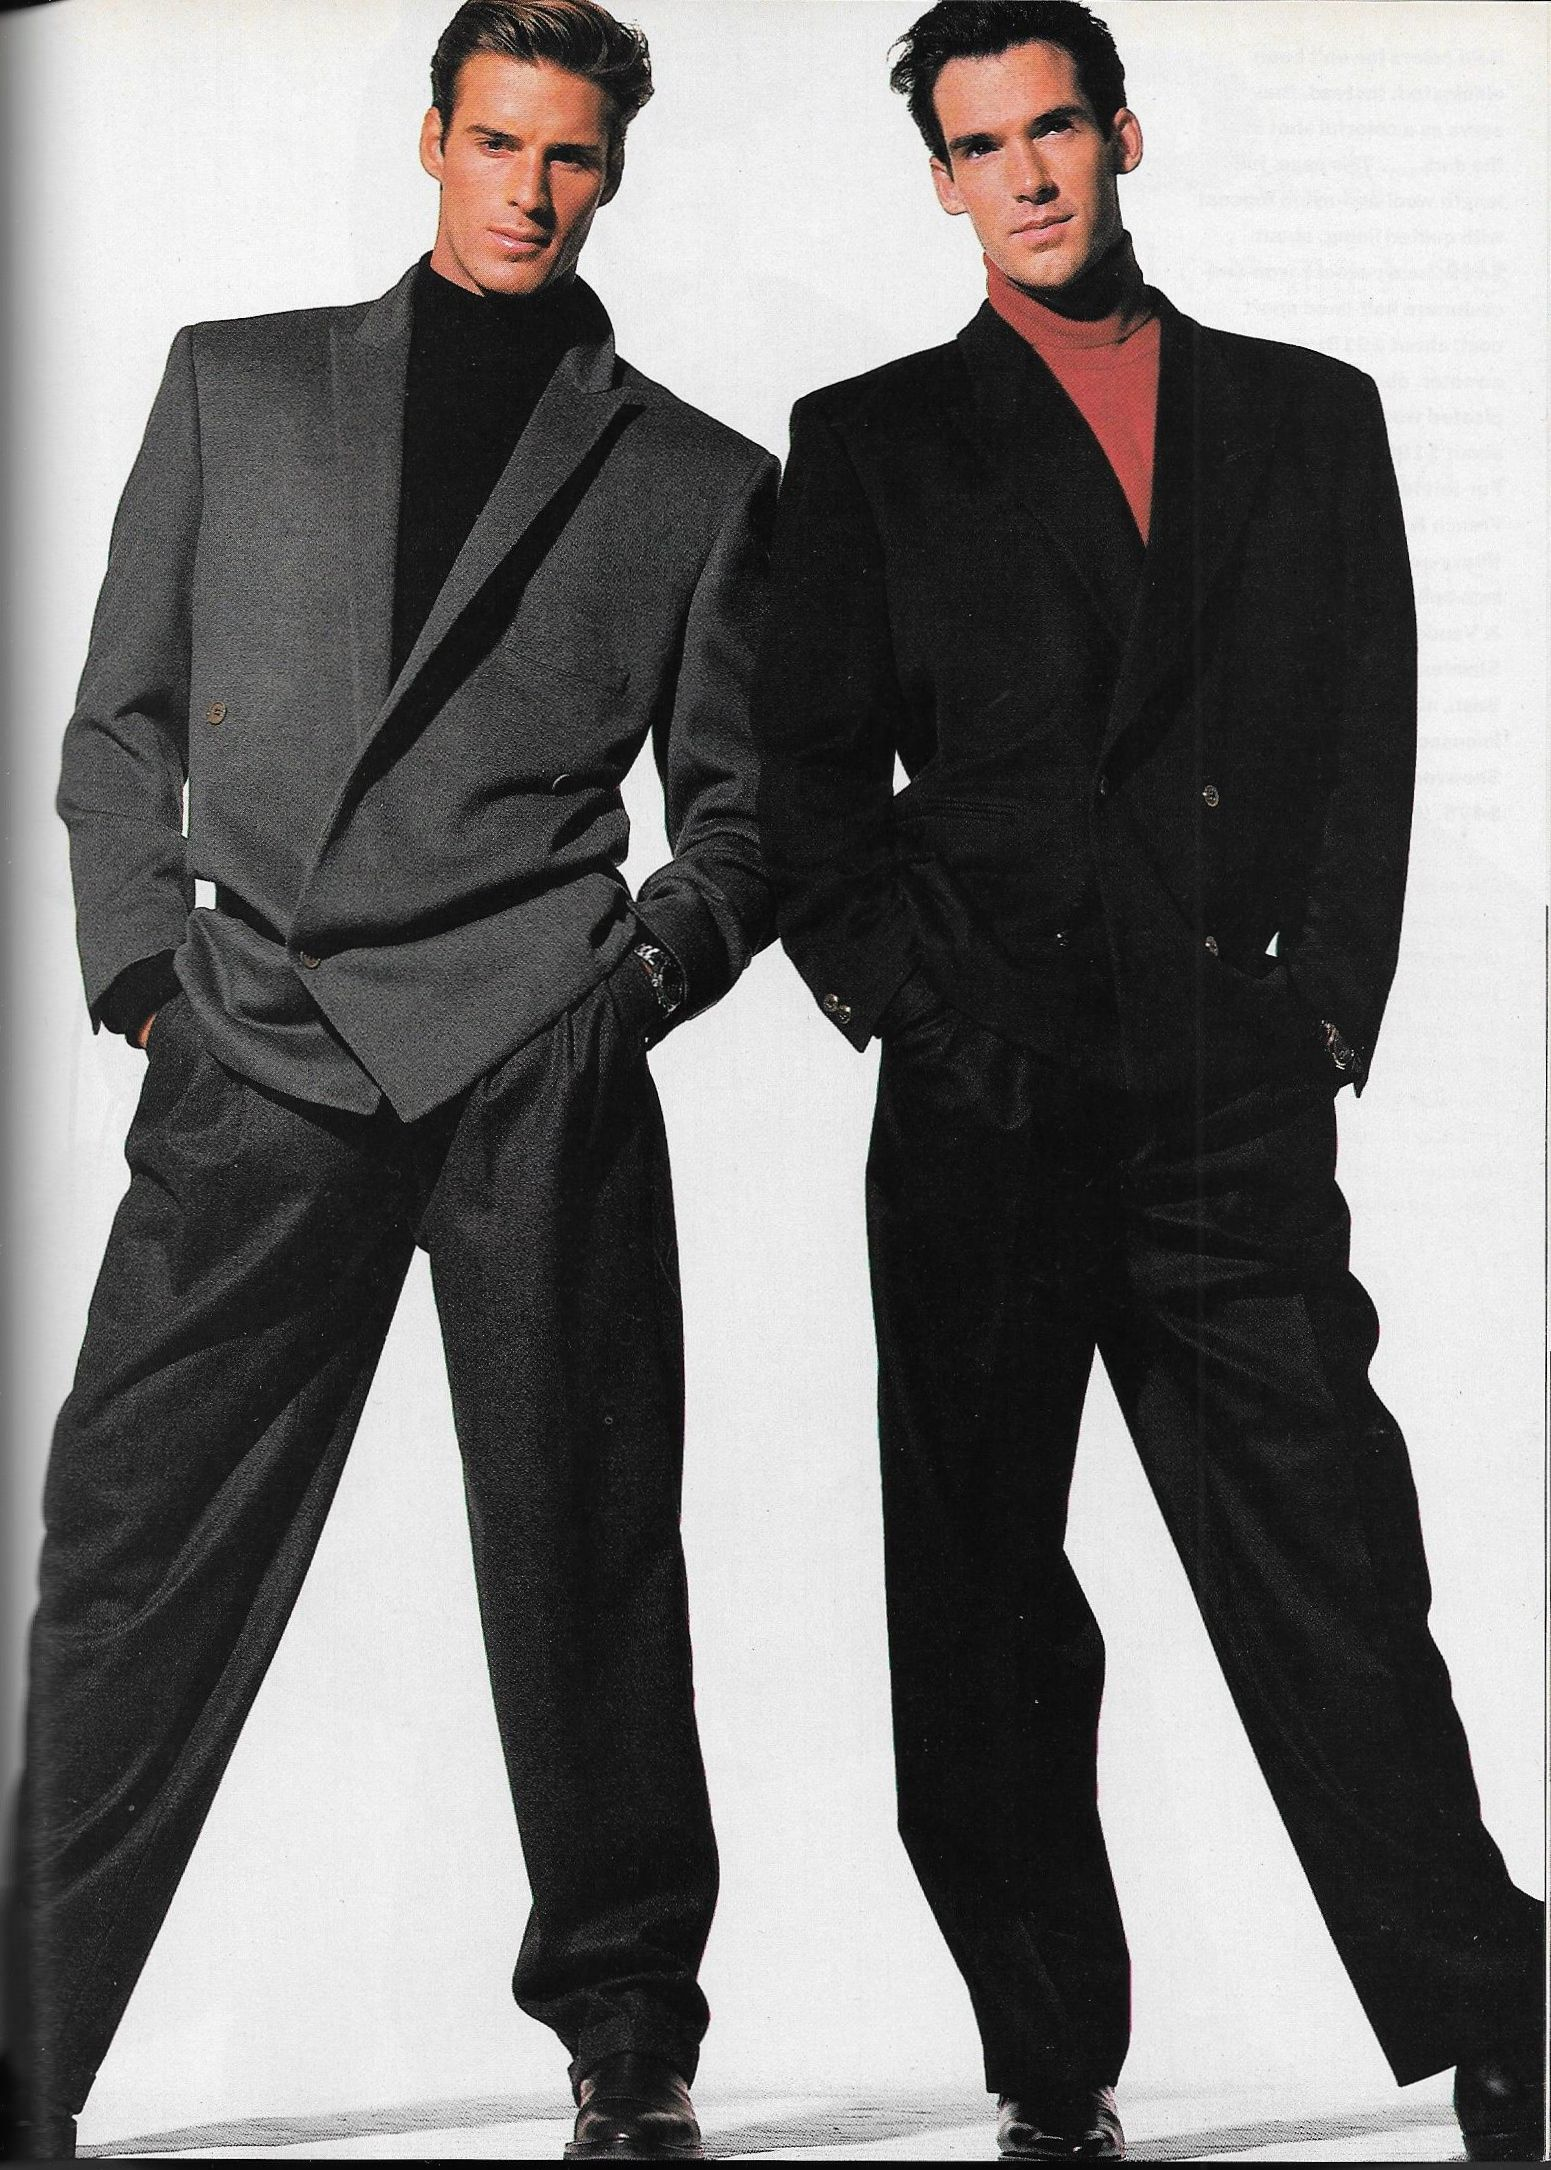 GQ October 1987 | 80s fashion men, 1980s fashion trends ...